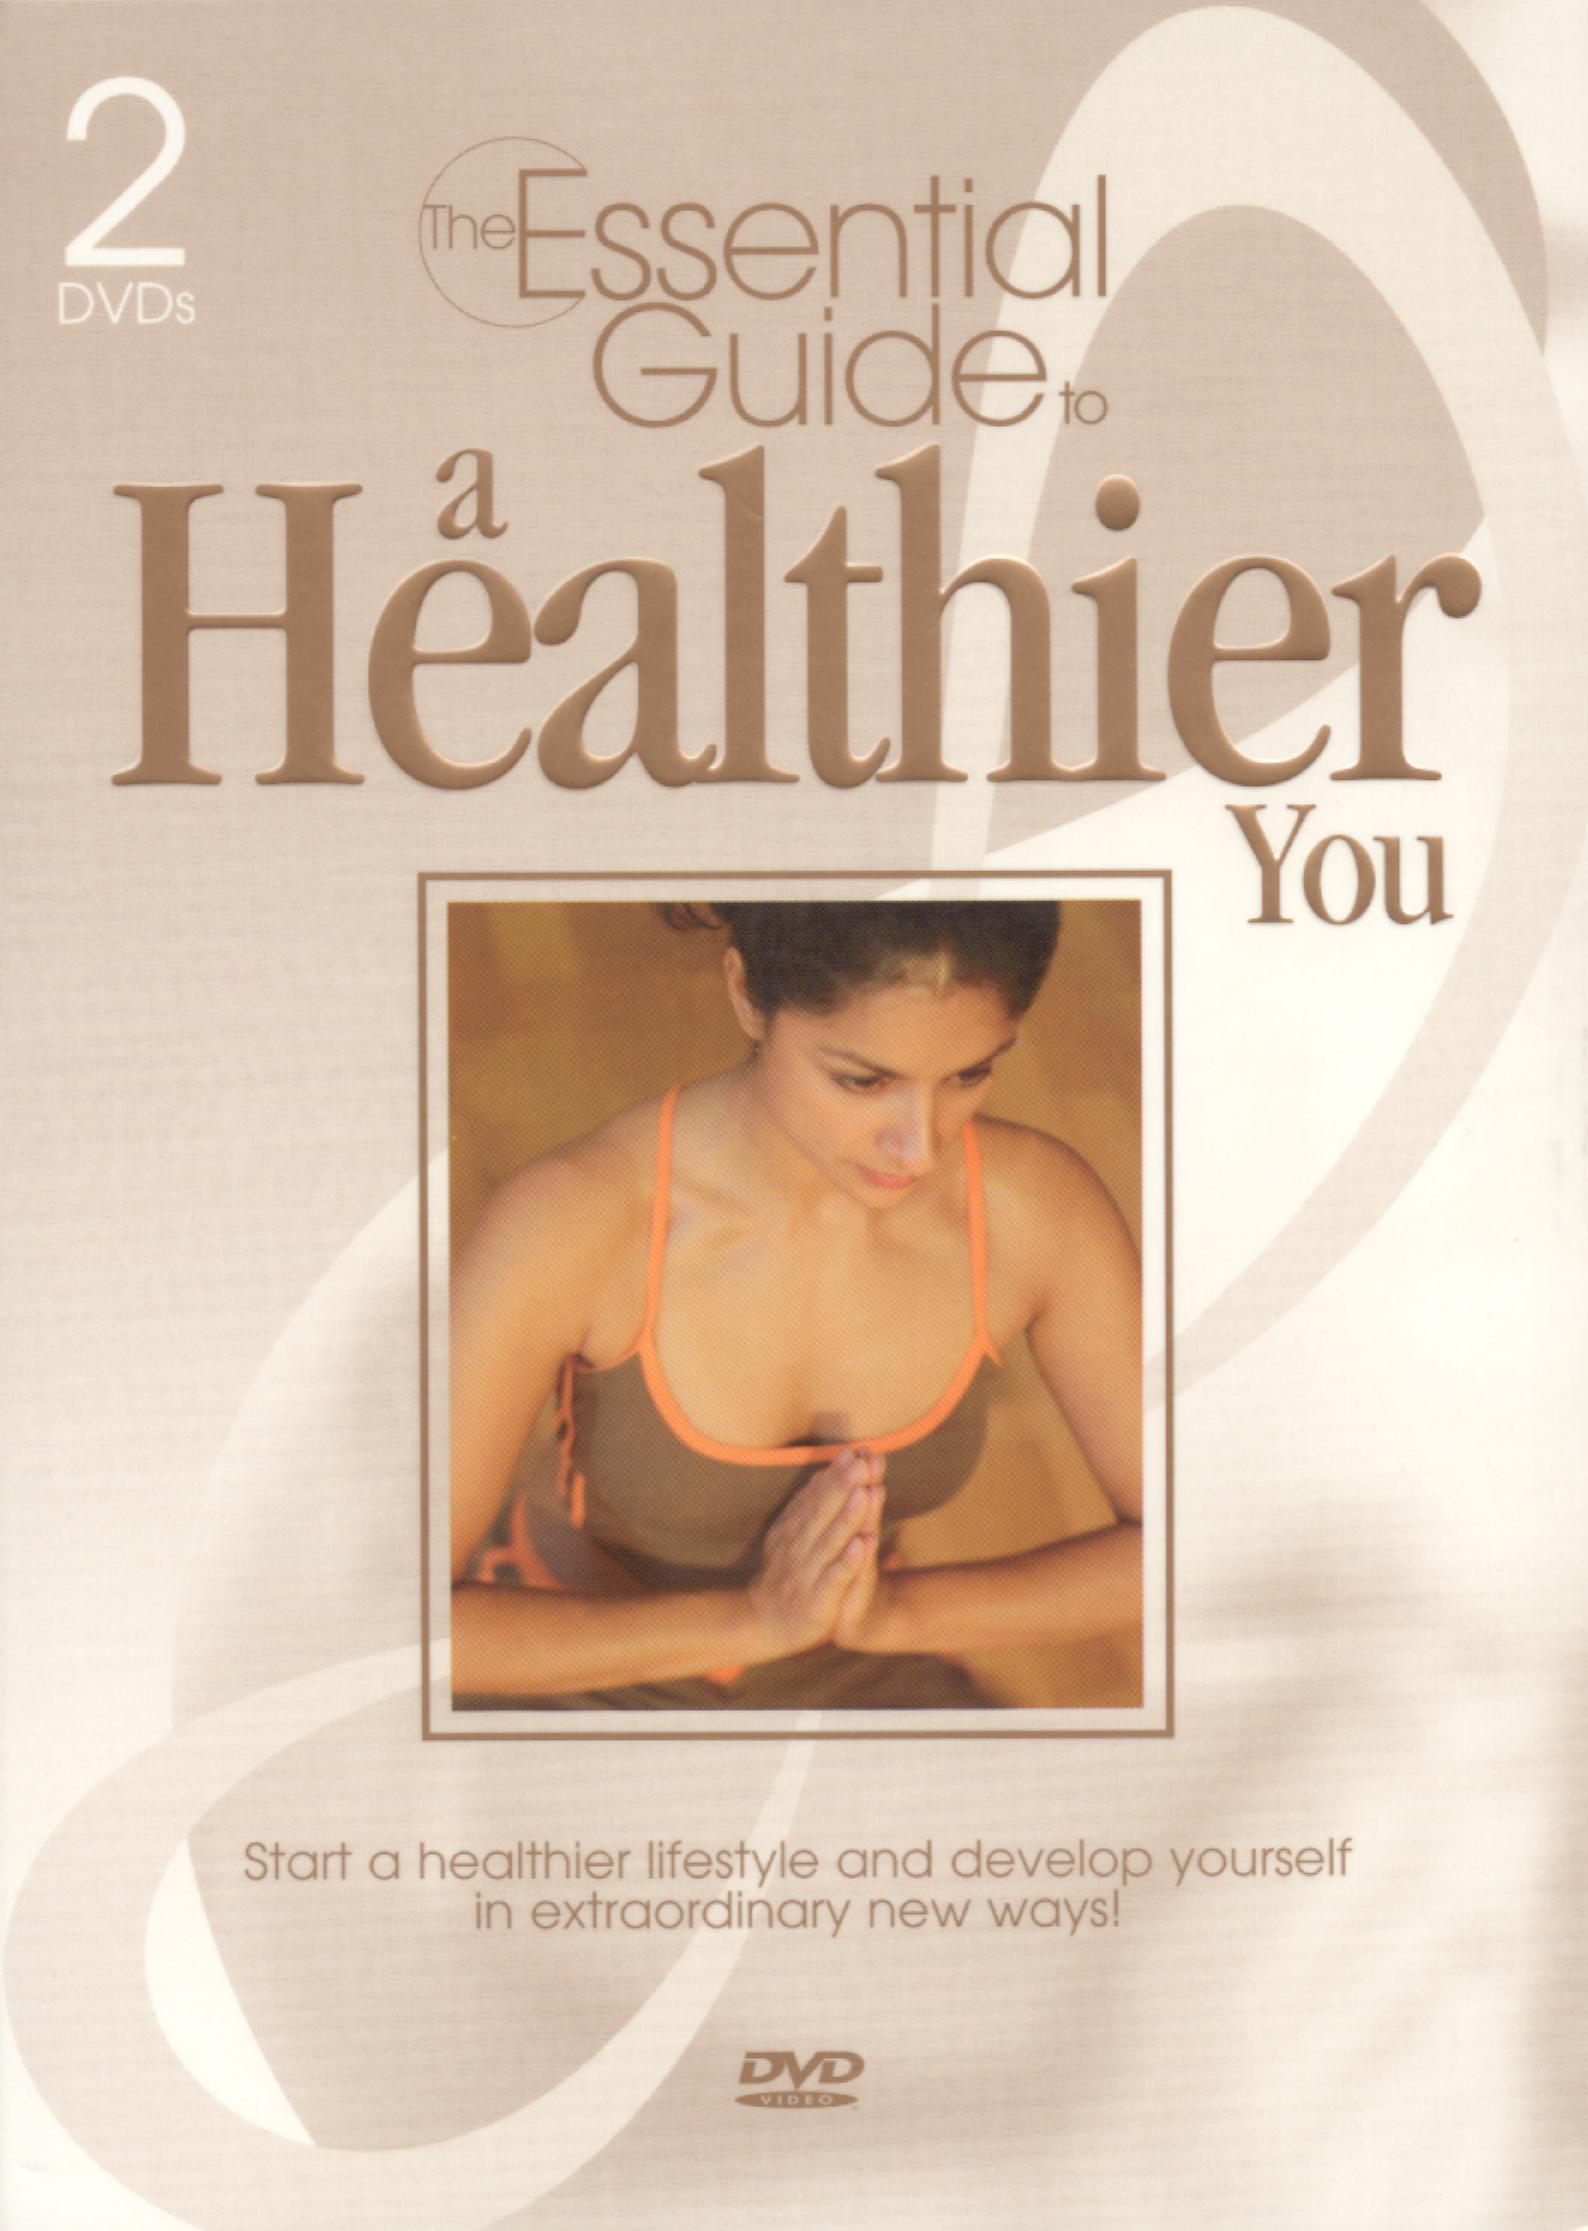 The Essential Guide to a Healthier You